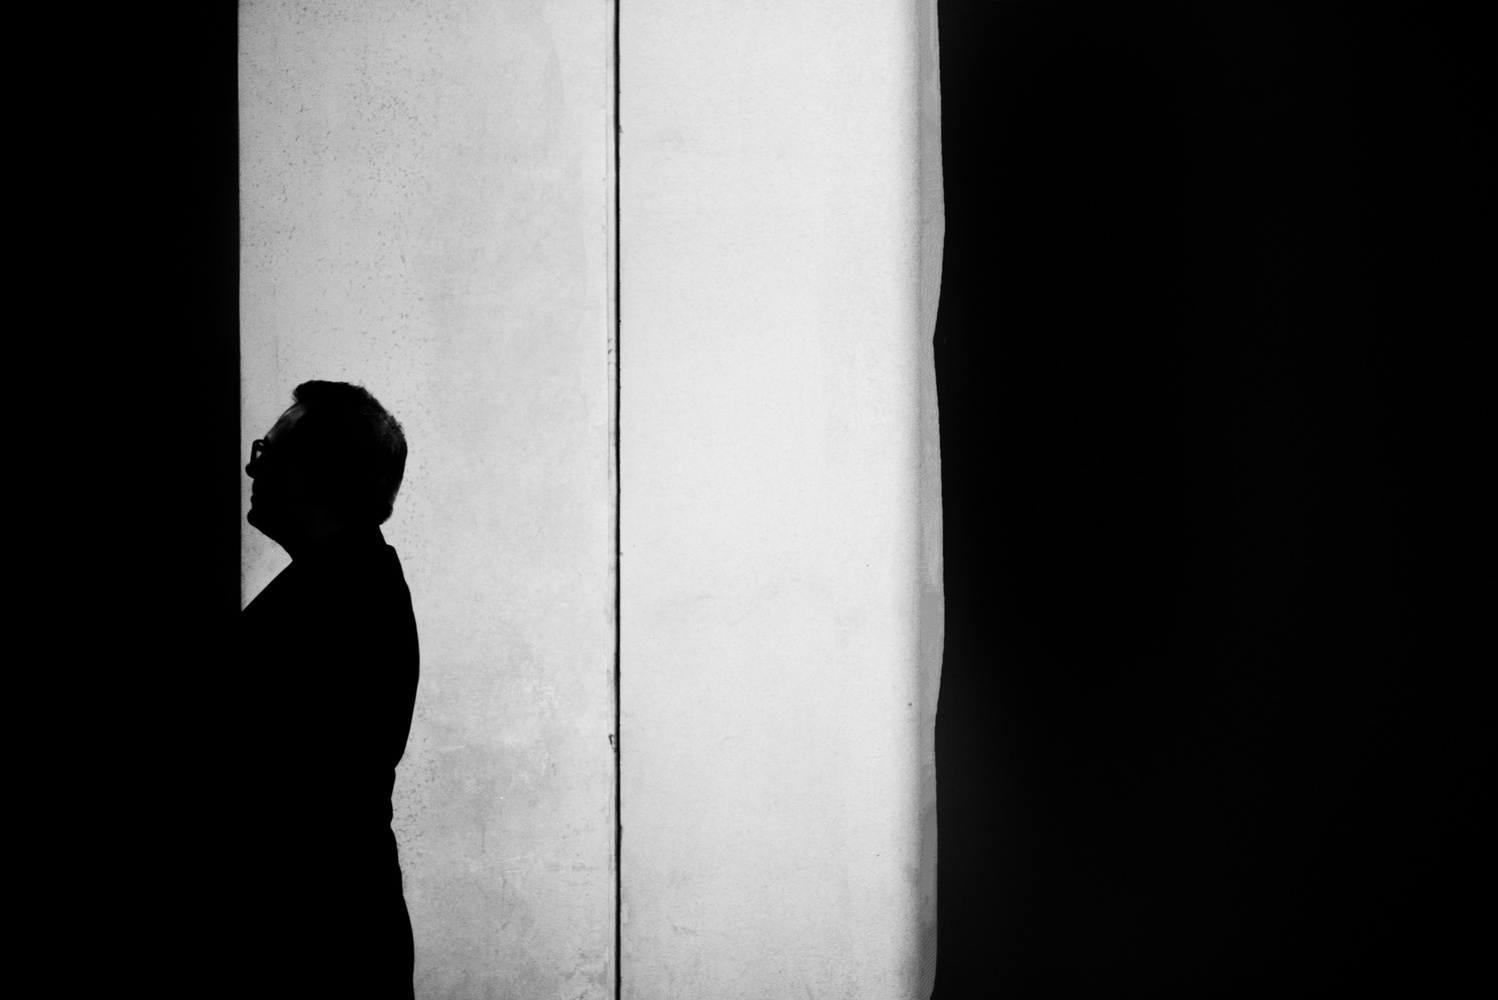 A silhouette of a man by a wall